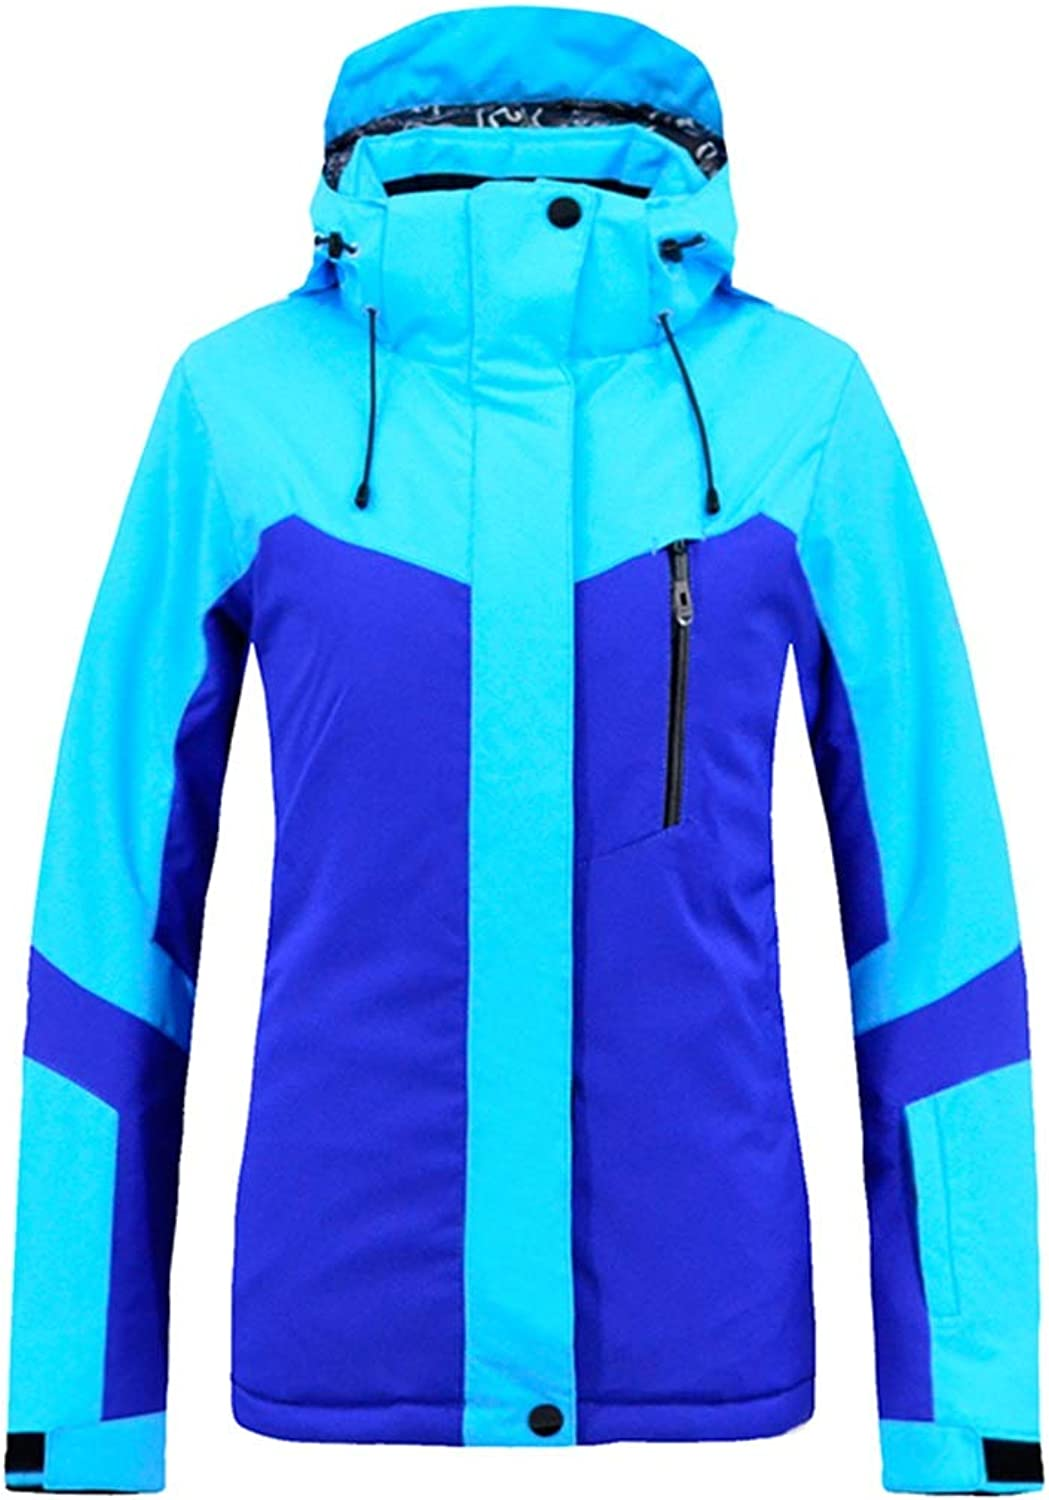 CTARCROW High Windproof Women's Ski Jacket Waterproof Technology Snow Jacket (color   bluee, Size   S)